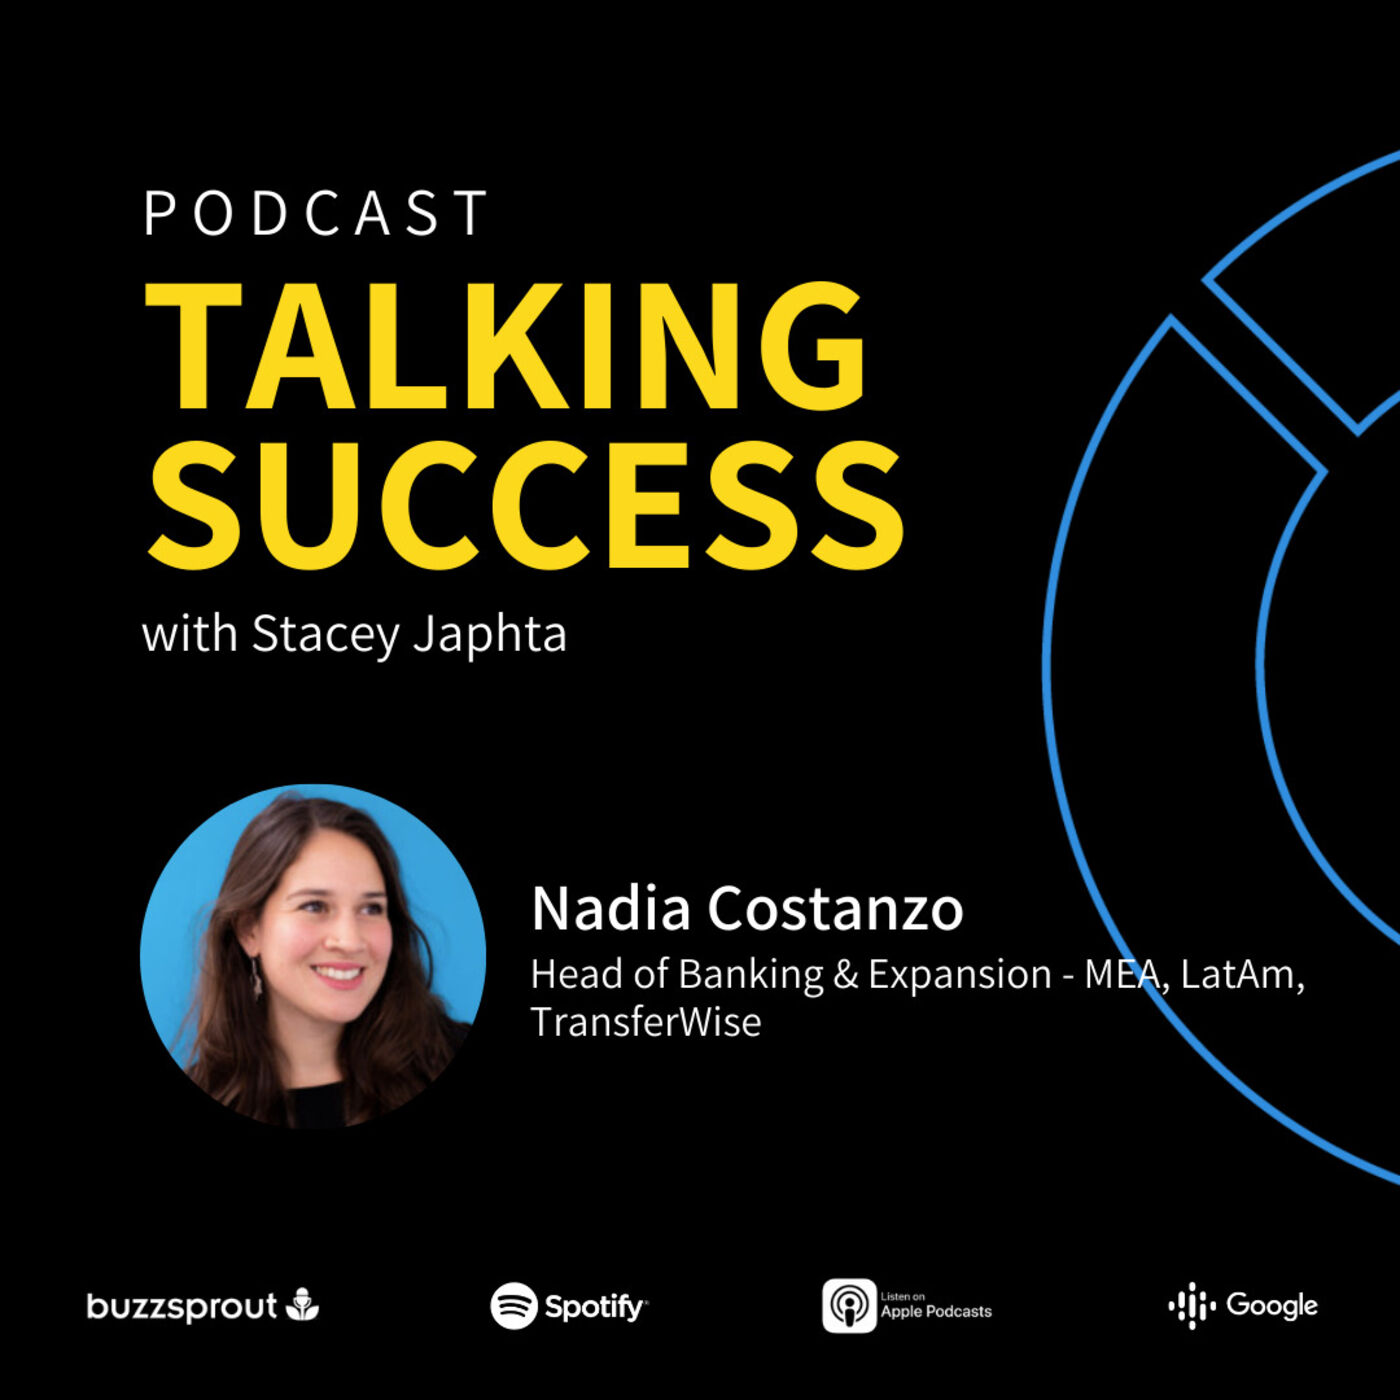 Nadia Costanzo, Head of Banking and Expansion (MEA & LatAm) at TransferWise - All things FinTech, Expanding into new markets, & Mission Zero